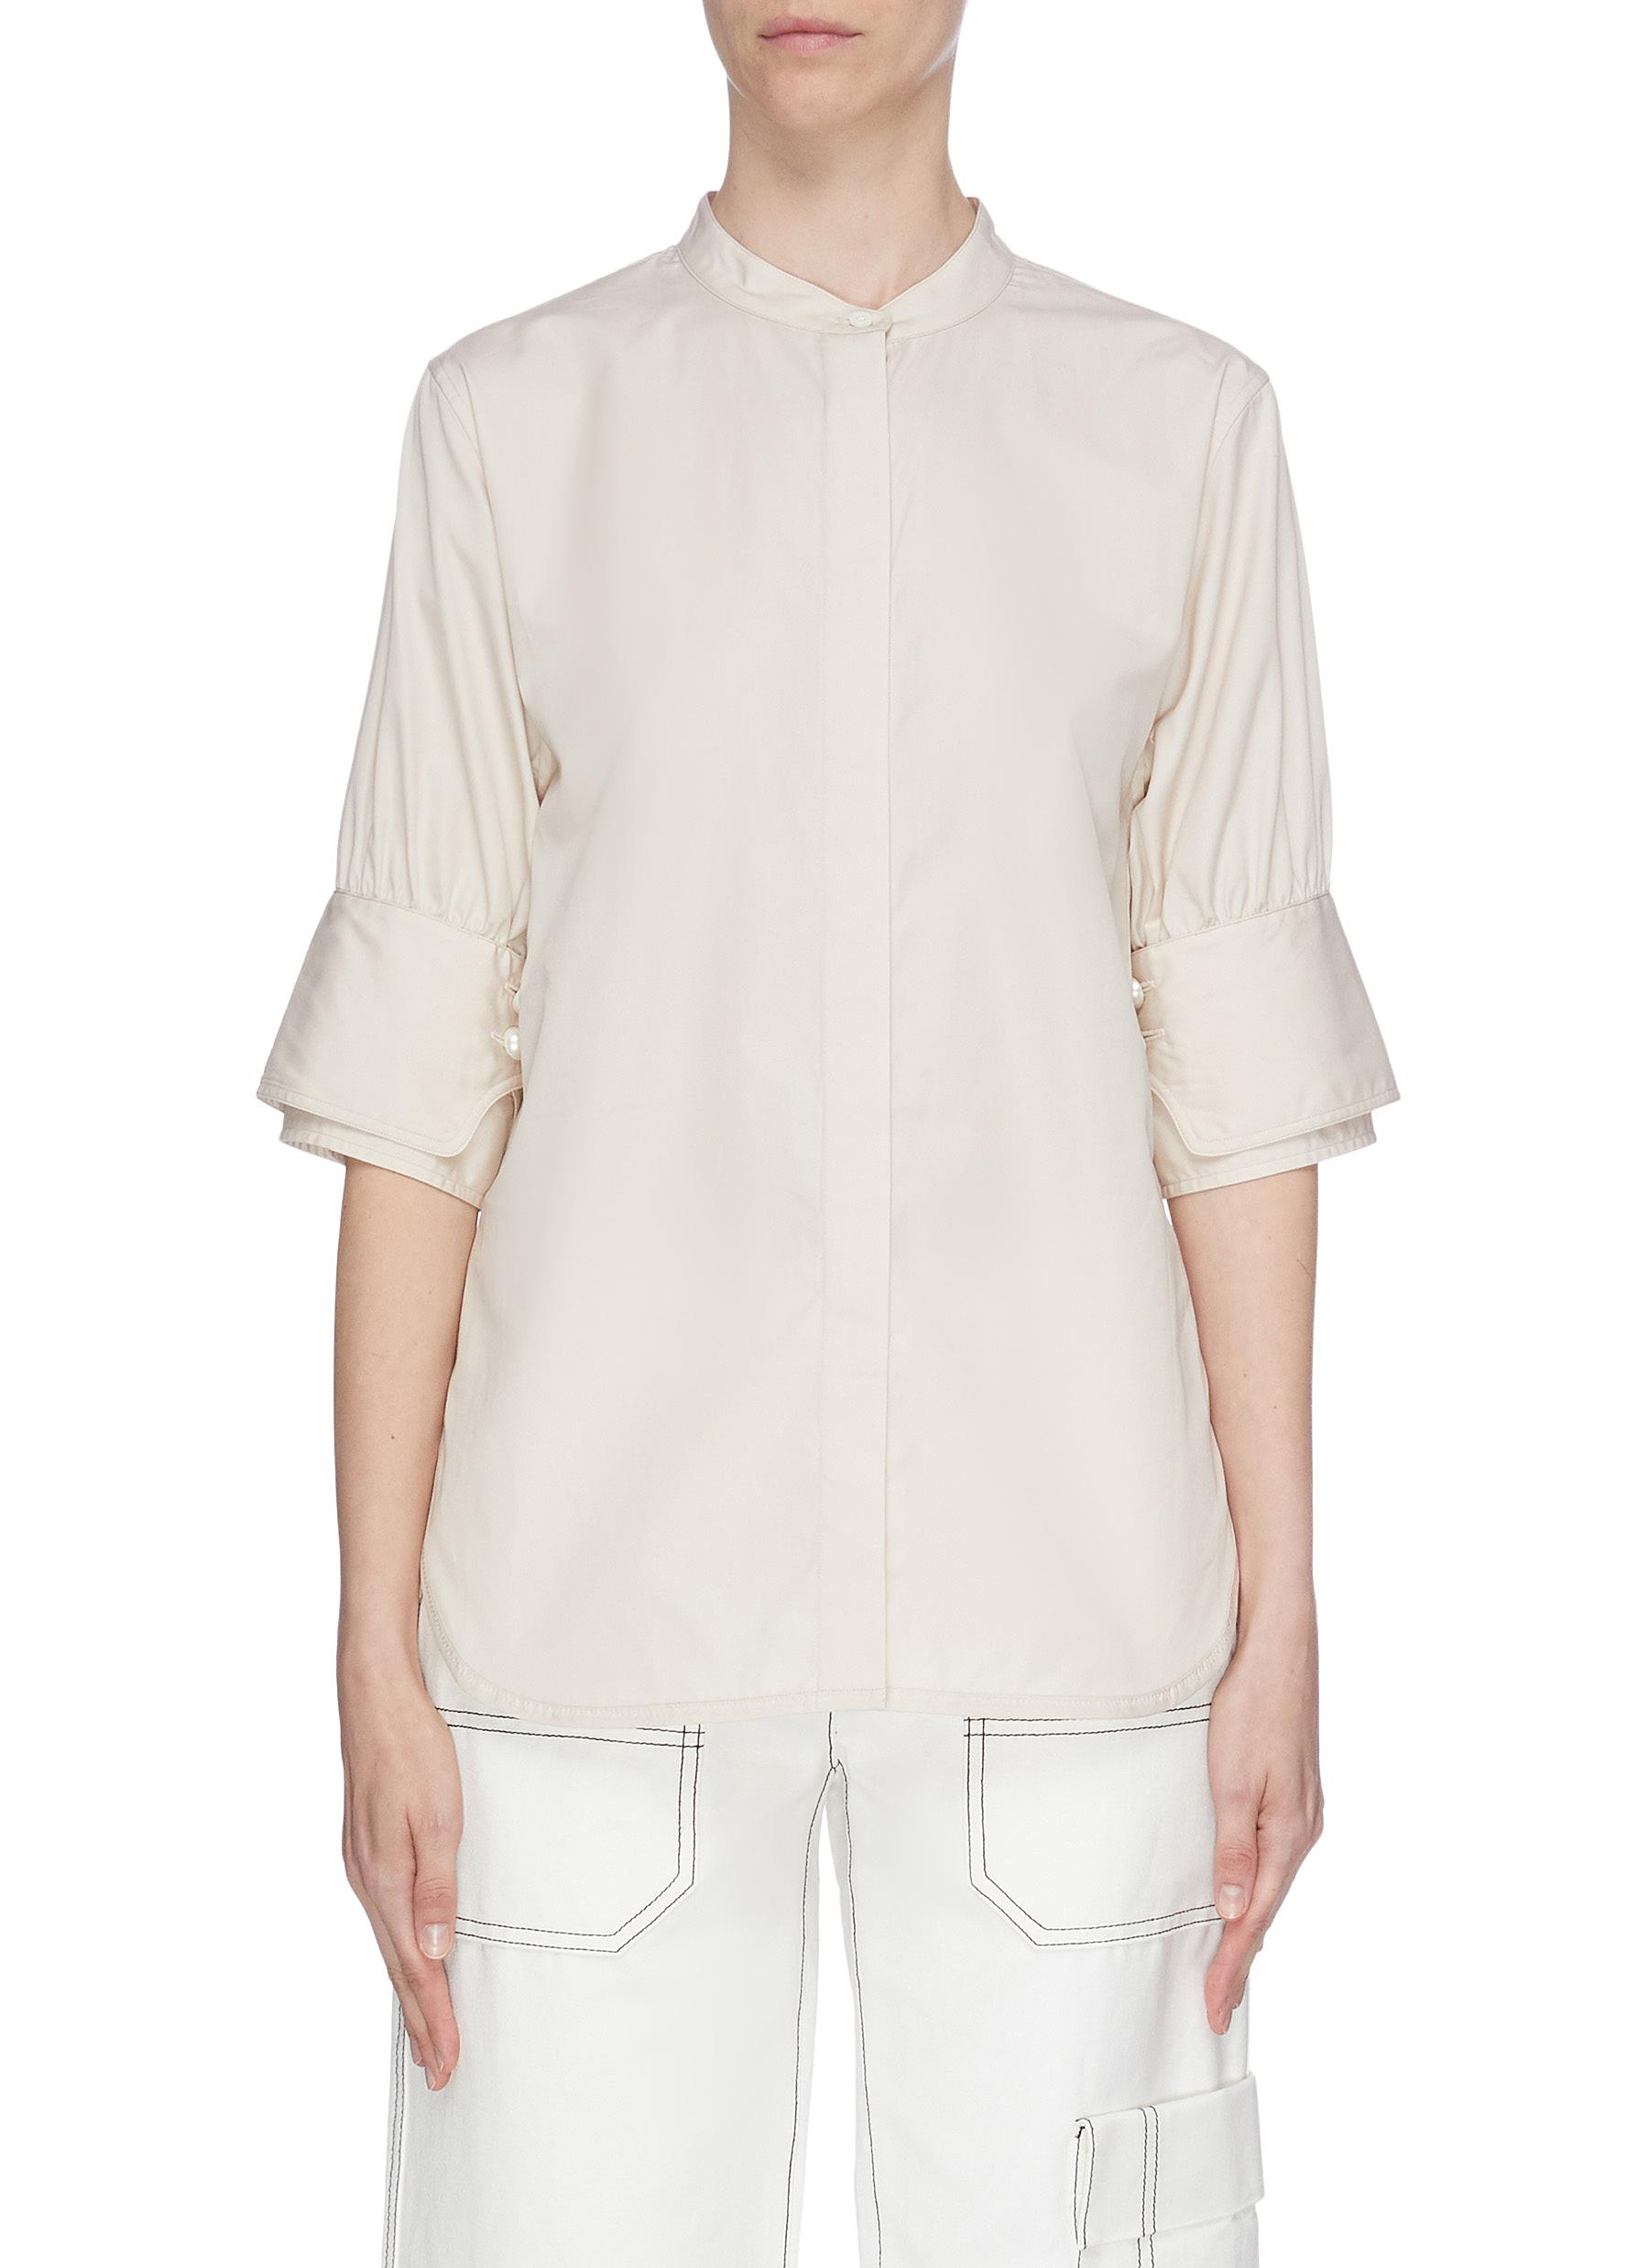 Faux pearl embellished mandarin collar shirt by 3.1 Phillip Lim